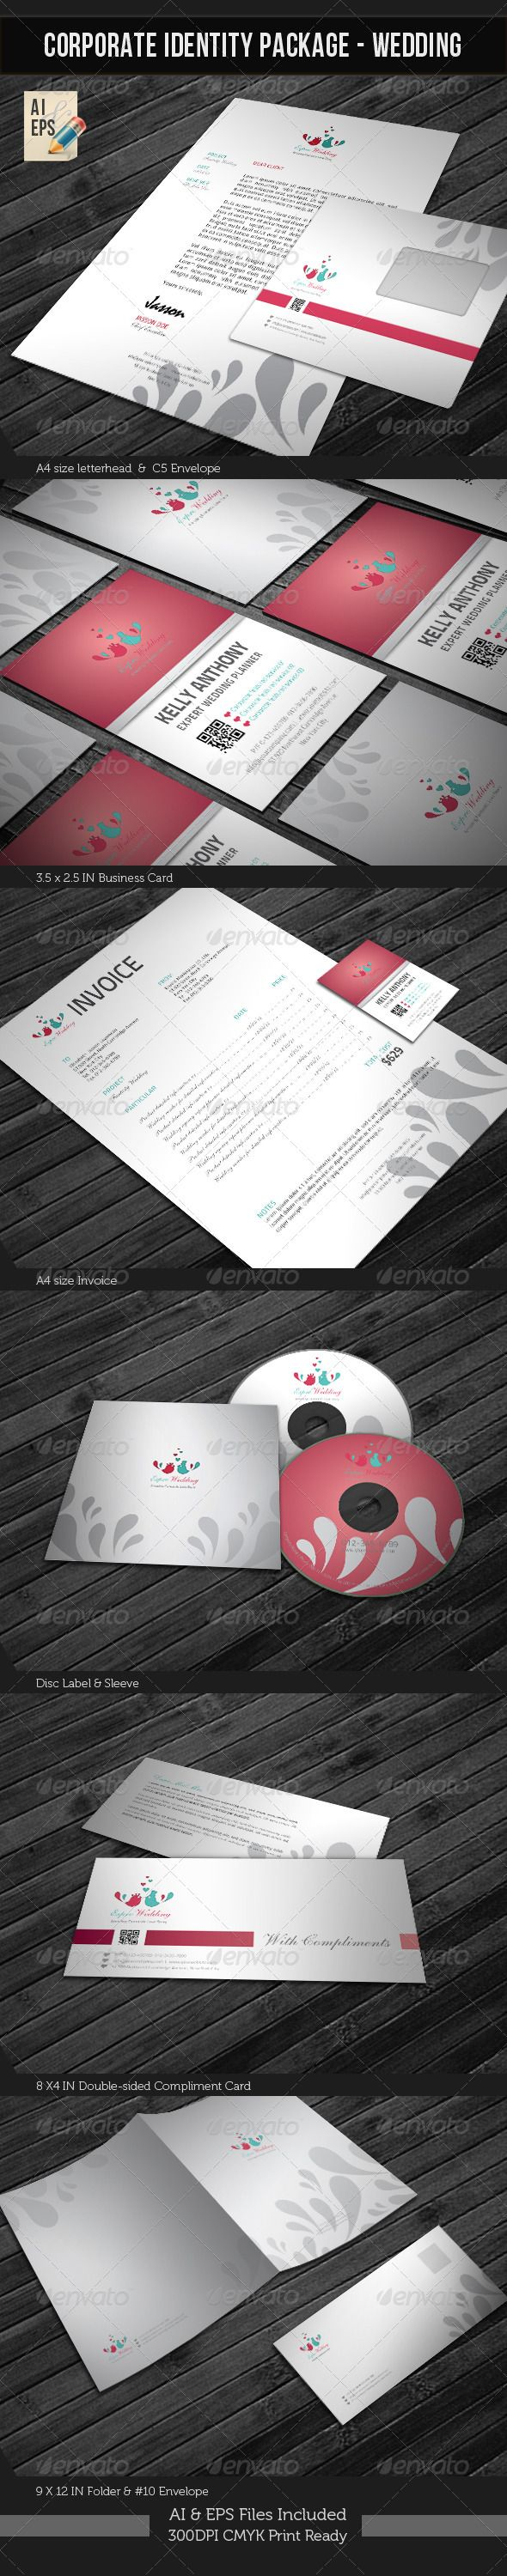 Corporate Identity Package Wedding Planner 16